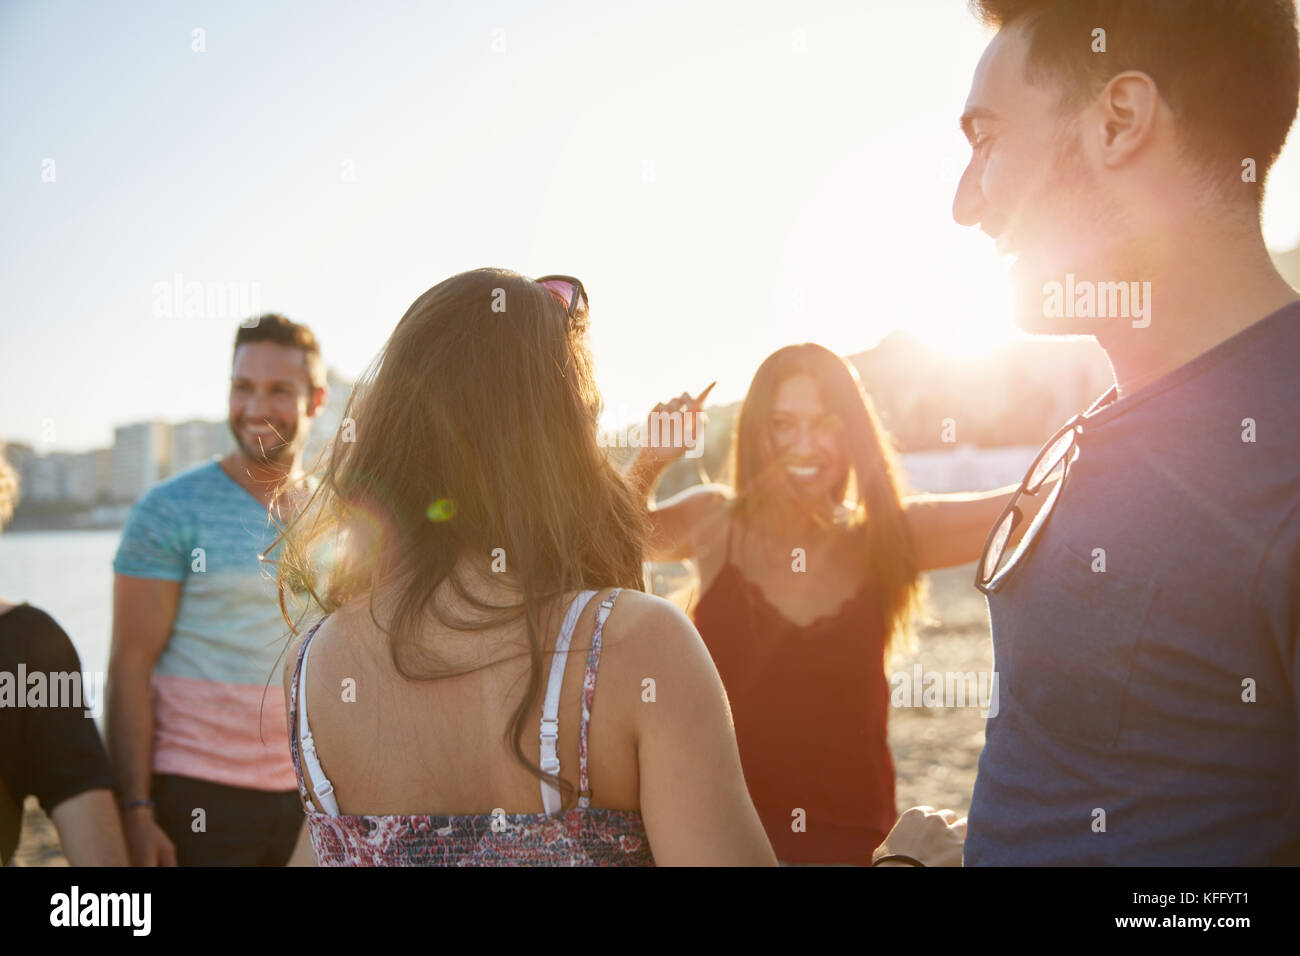 Portrait of happy group of friends dancing on beach Photo Stock